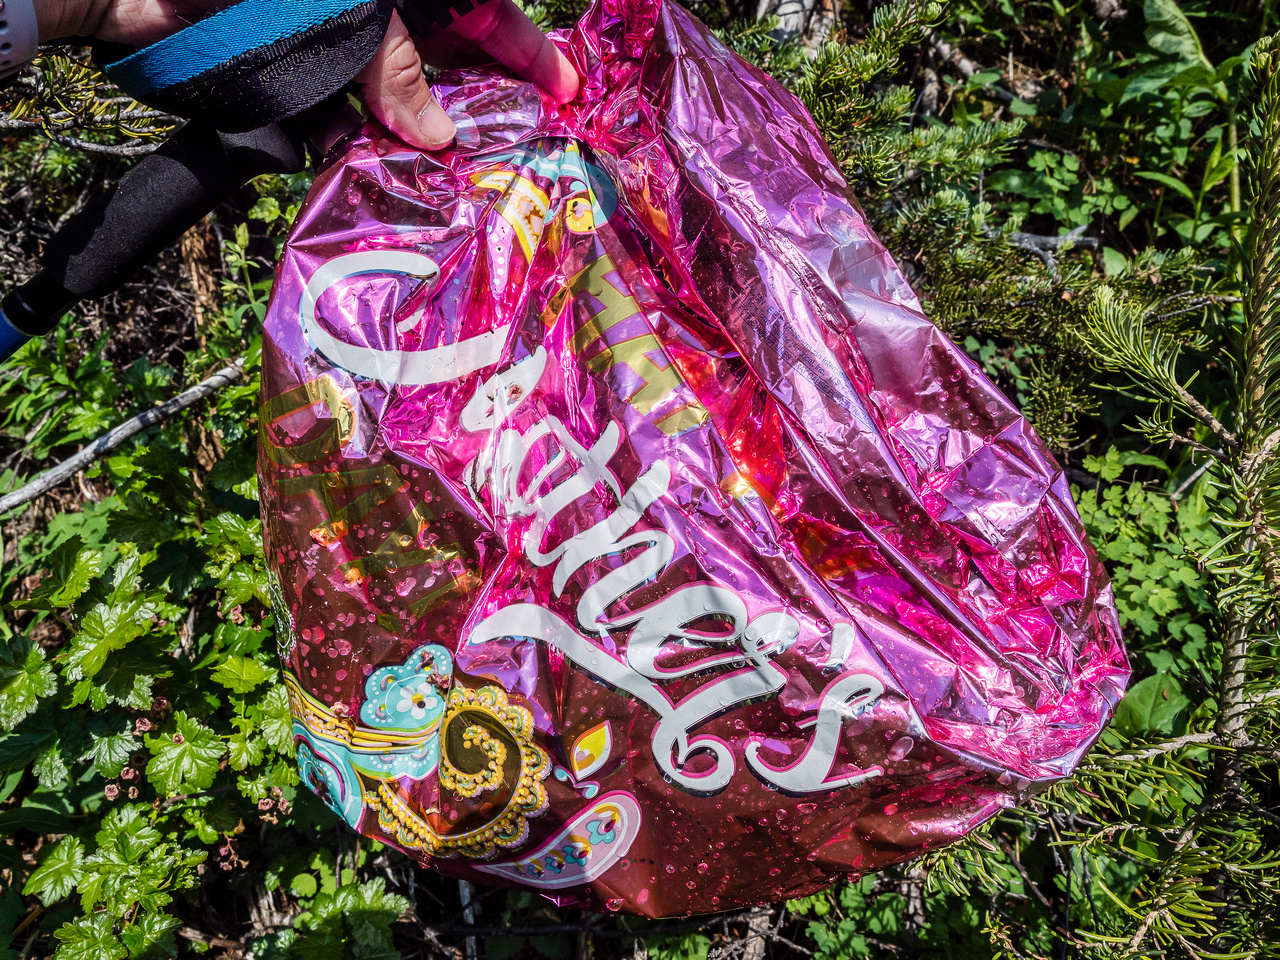 These Mylar balloons are showing up everywhere in the backcountry nowadays.